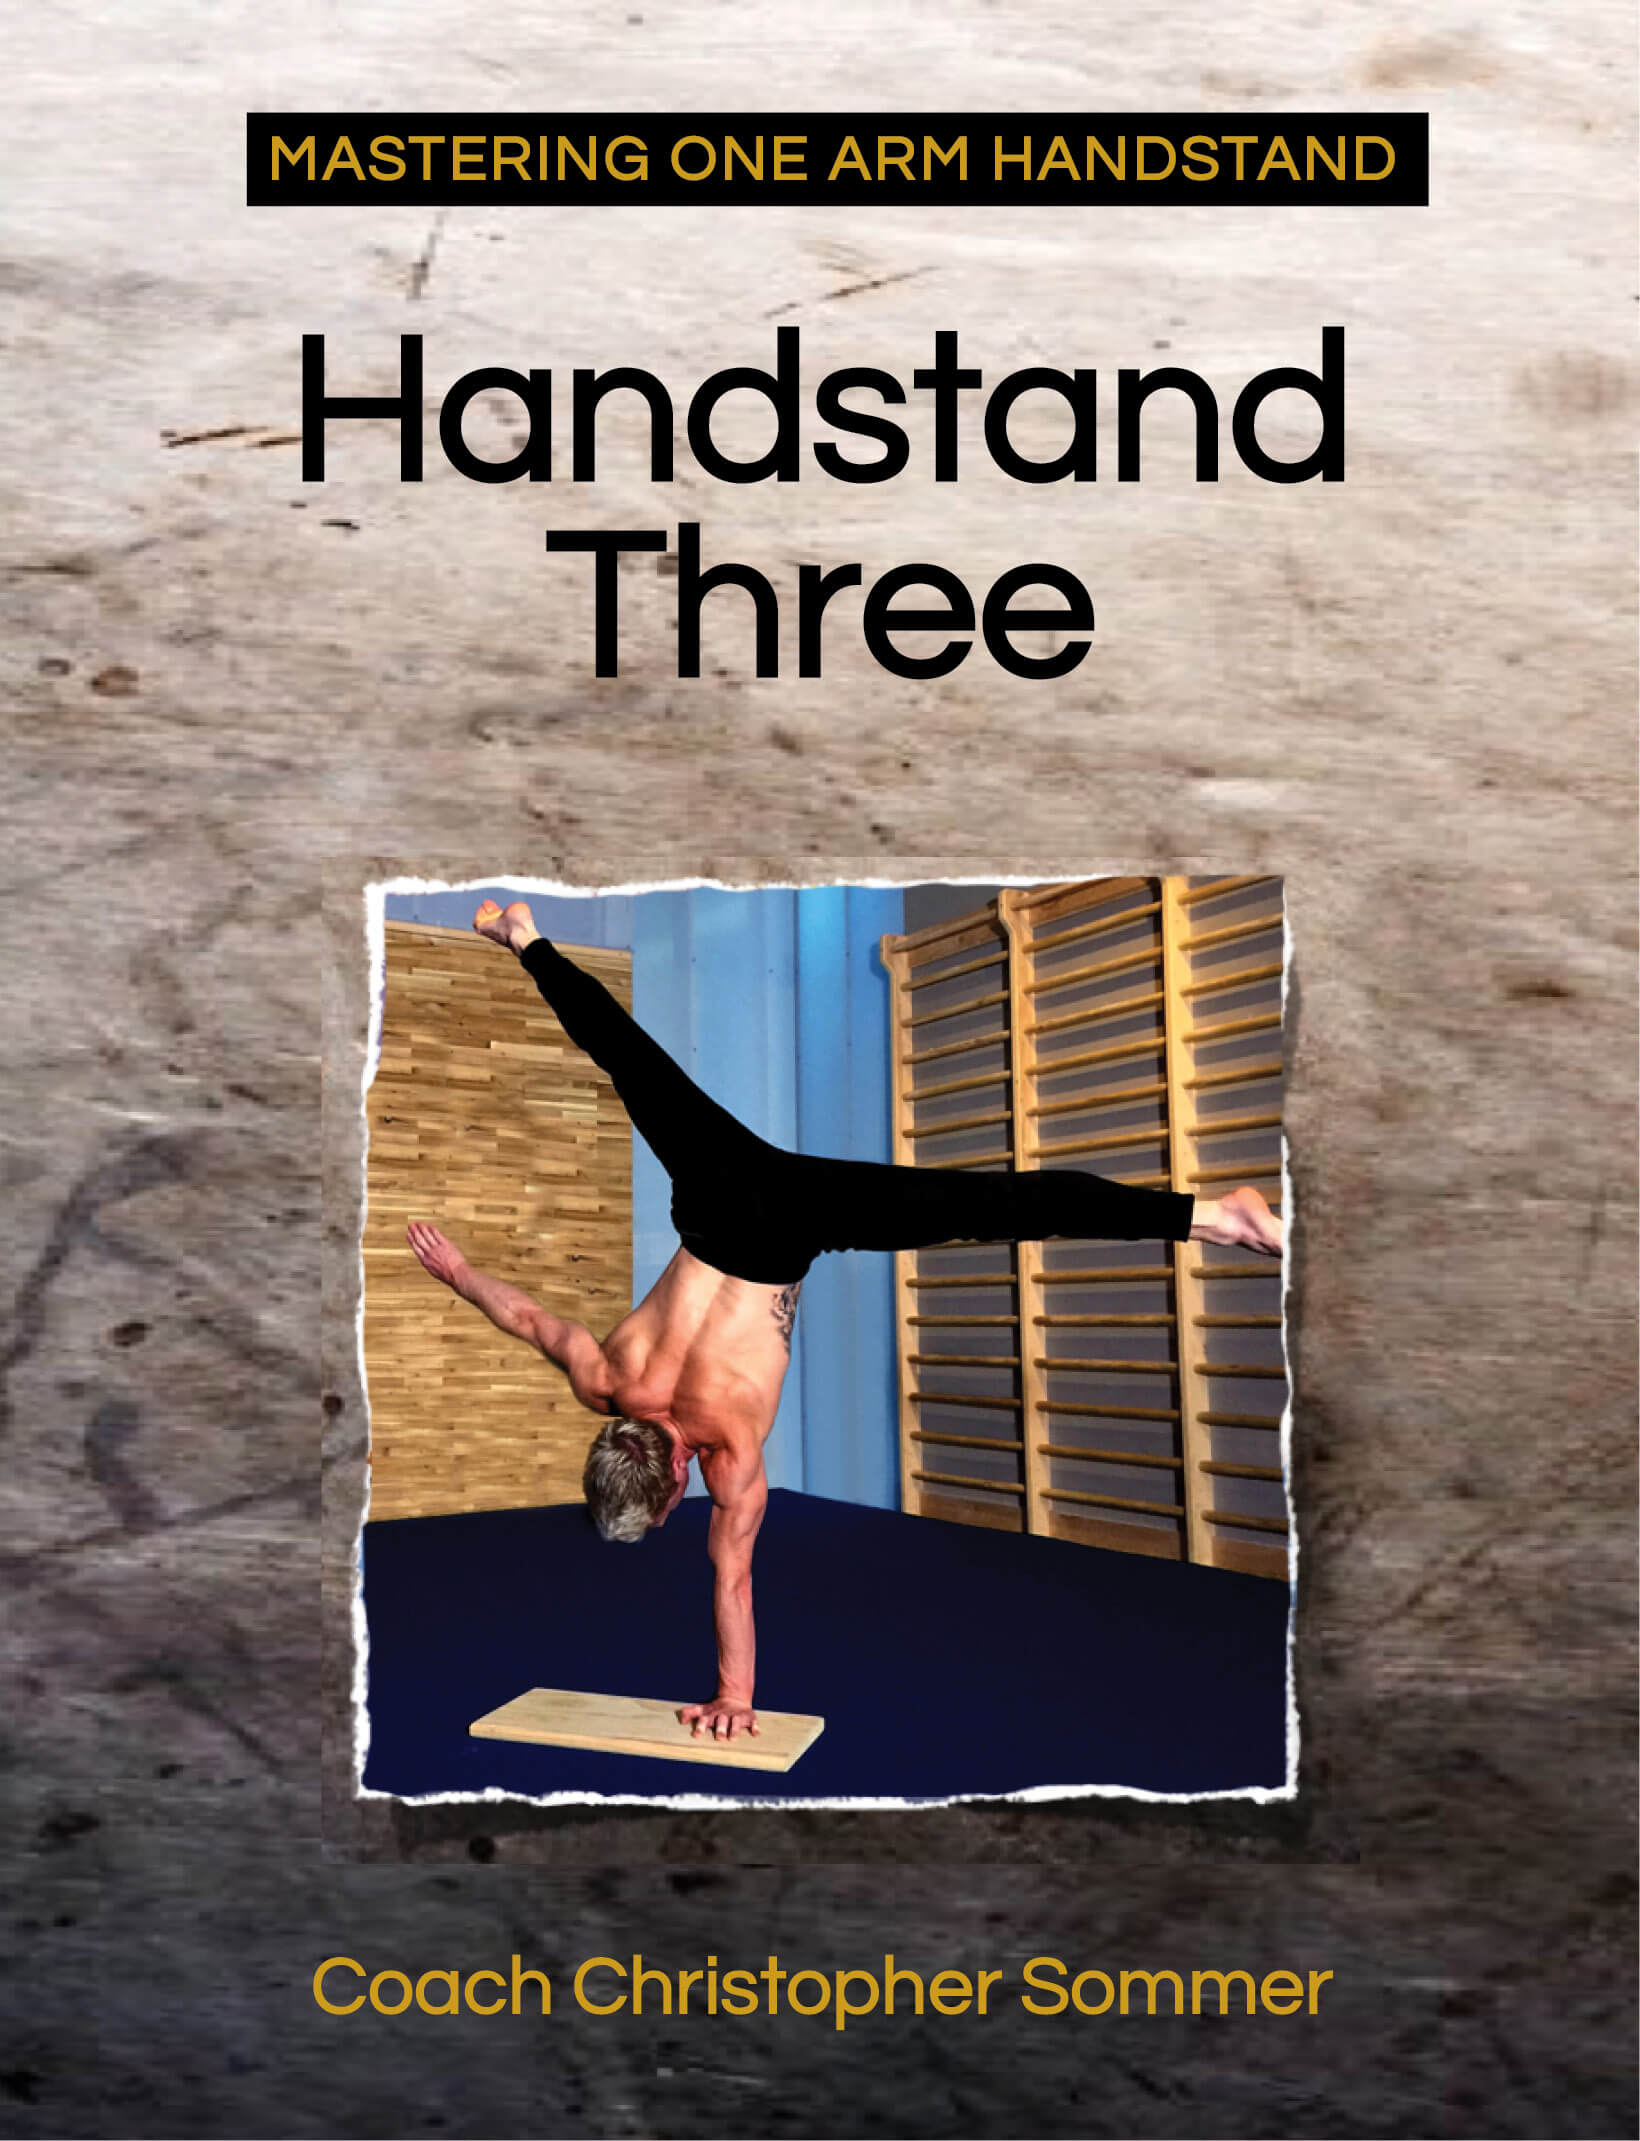 Mastering the one arm handstand